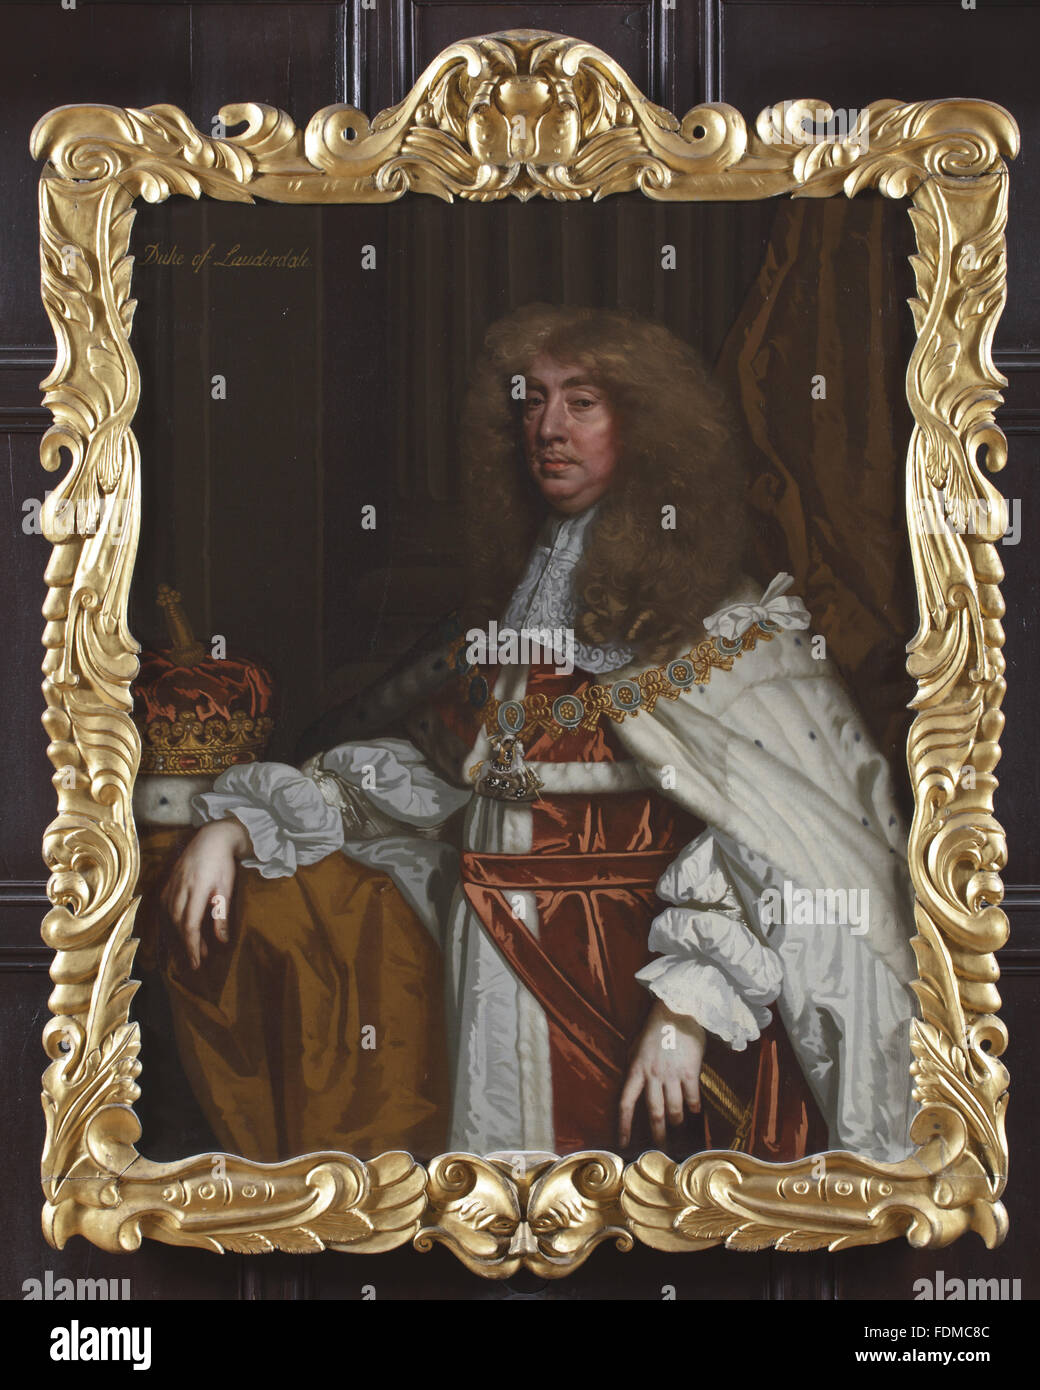 JOHN MAITLAND, DUKE OF LAUDERDALE (1616-1682) IN GARTER ROBES by Sir Peter Lely (Soest 1618 - London 1680), circa - Stock Image